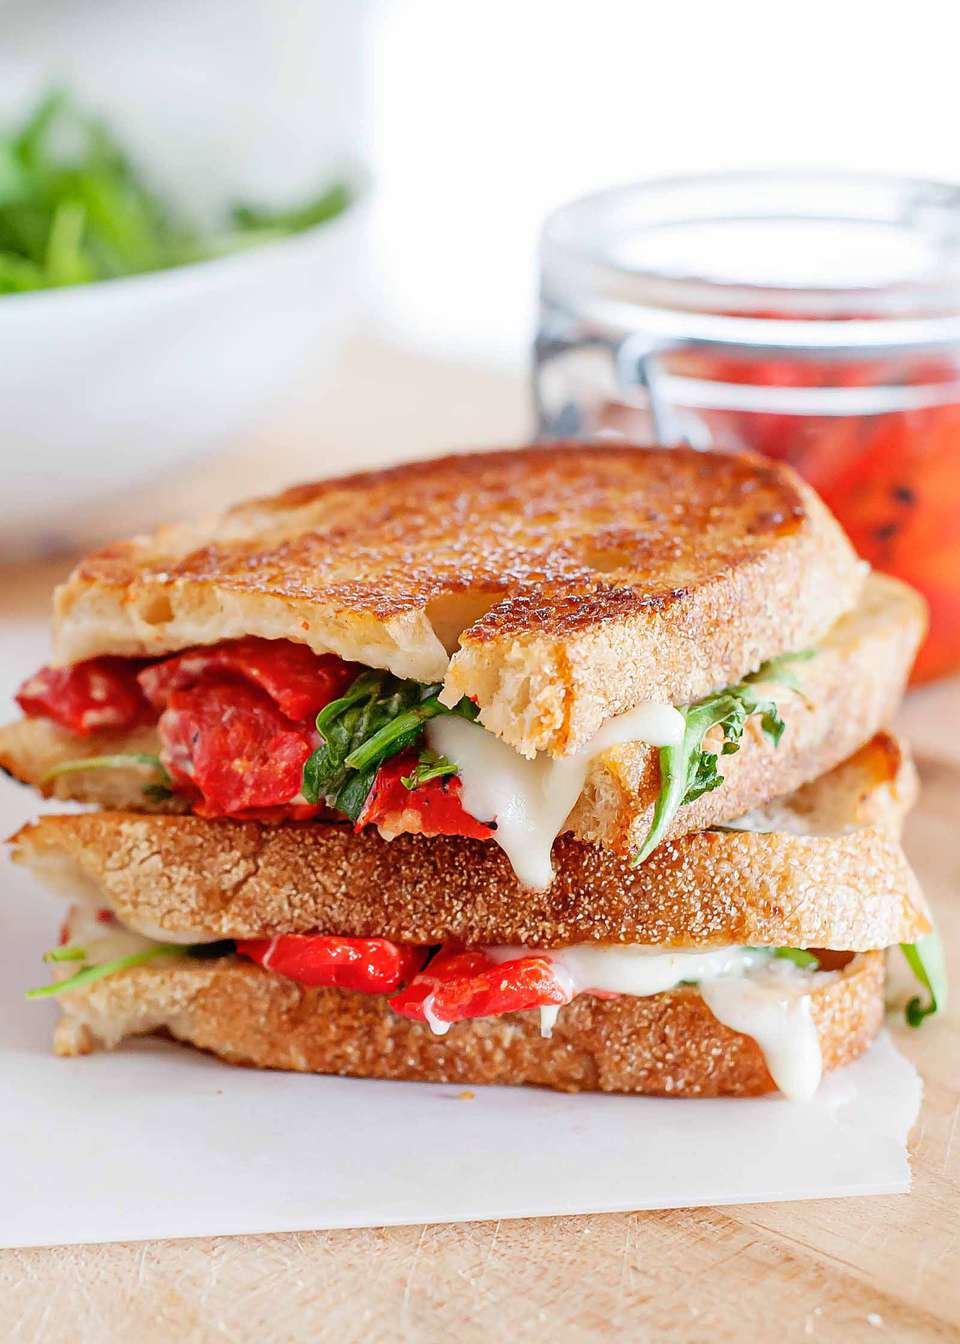 A grilled mozzarella sandwich with roasted red peppers and arugula